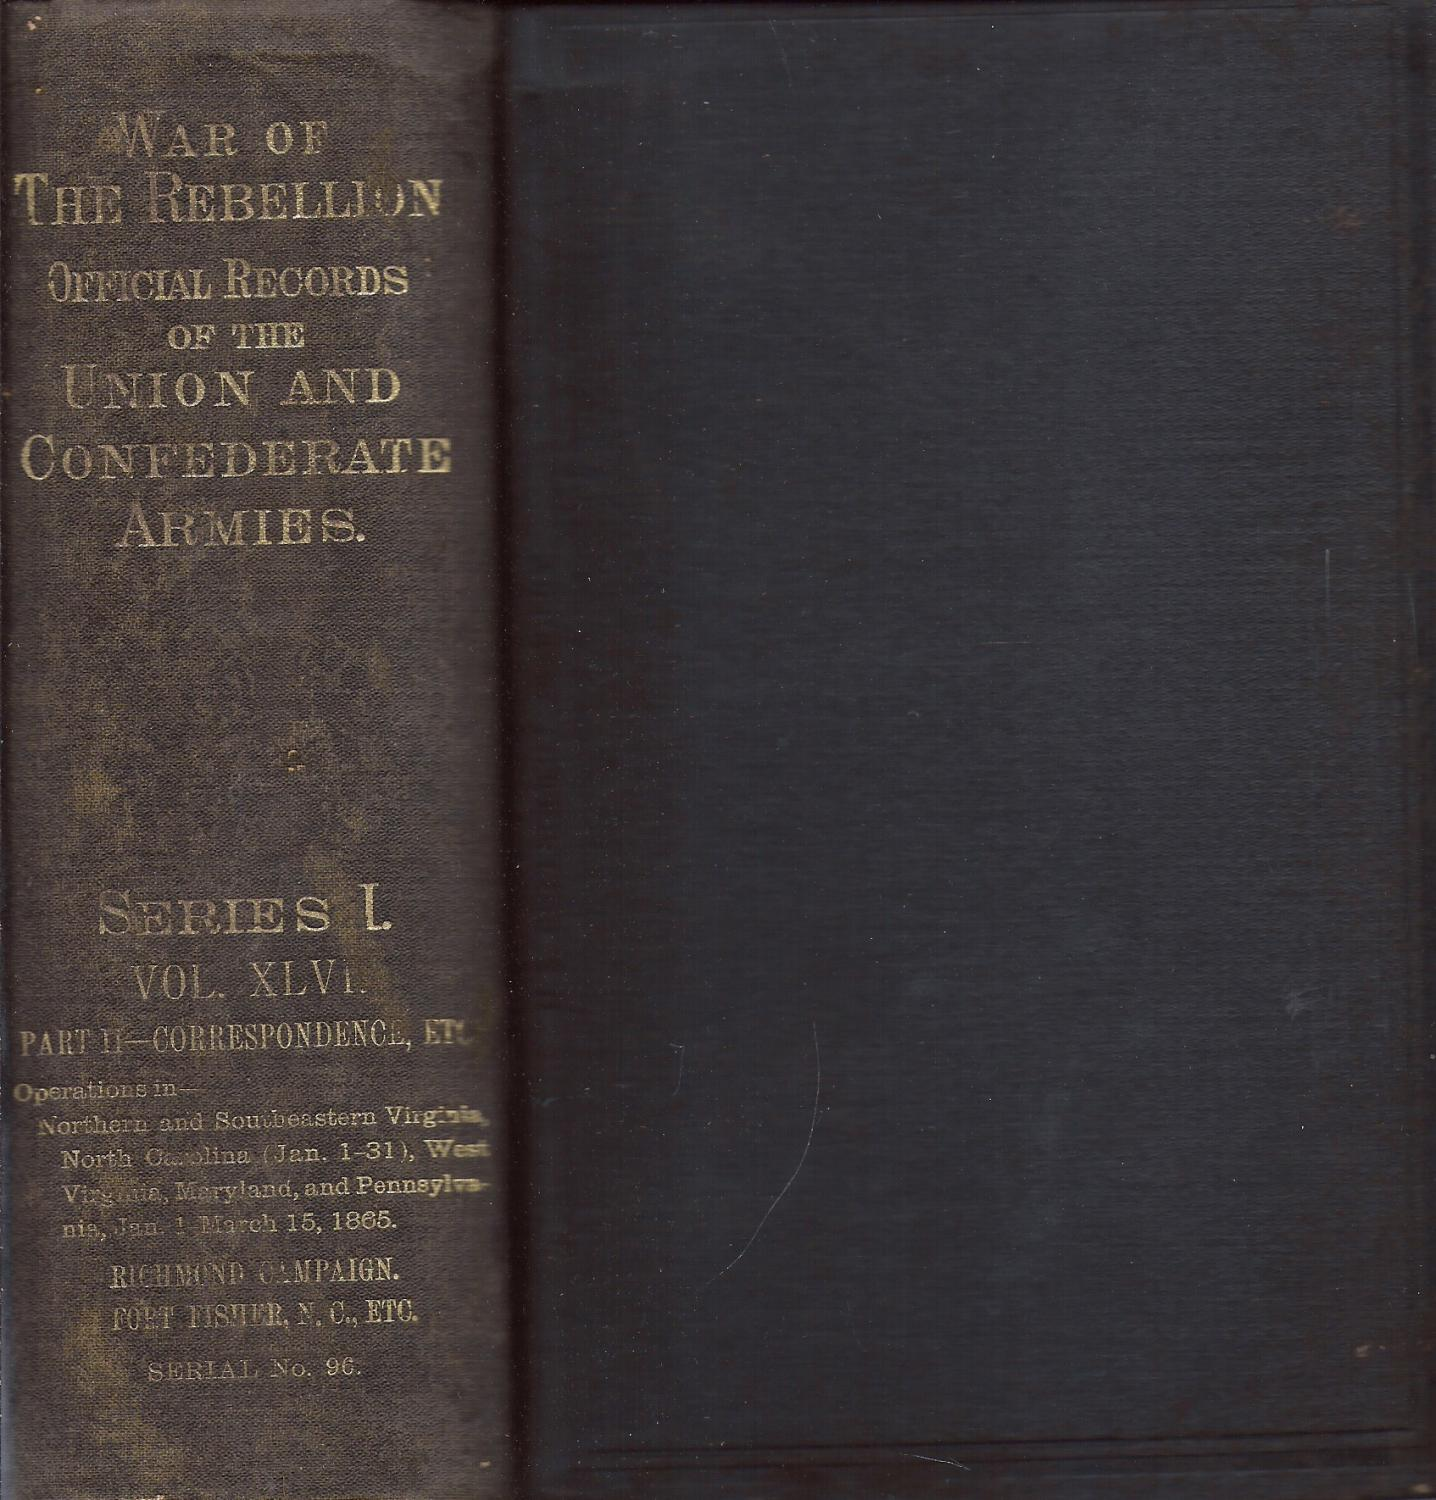 War of the Rebellion Official Records of the Union and Confederate Armies